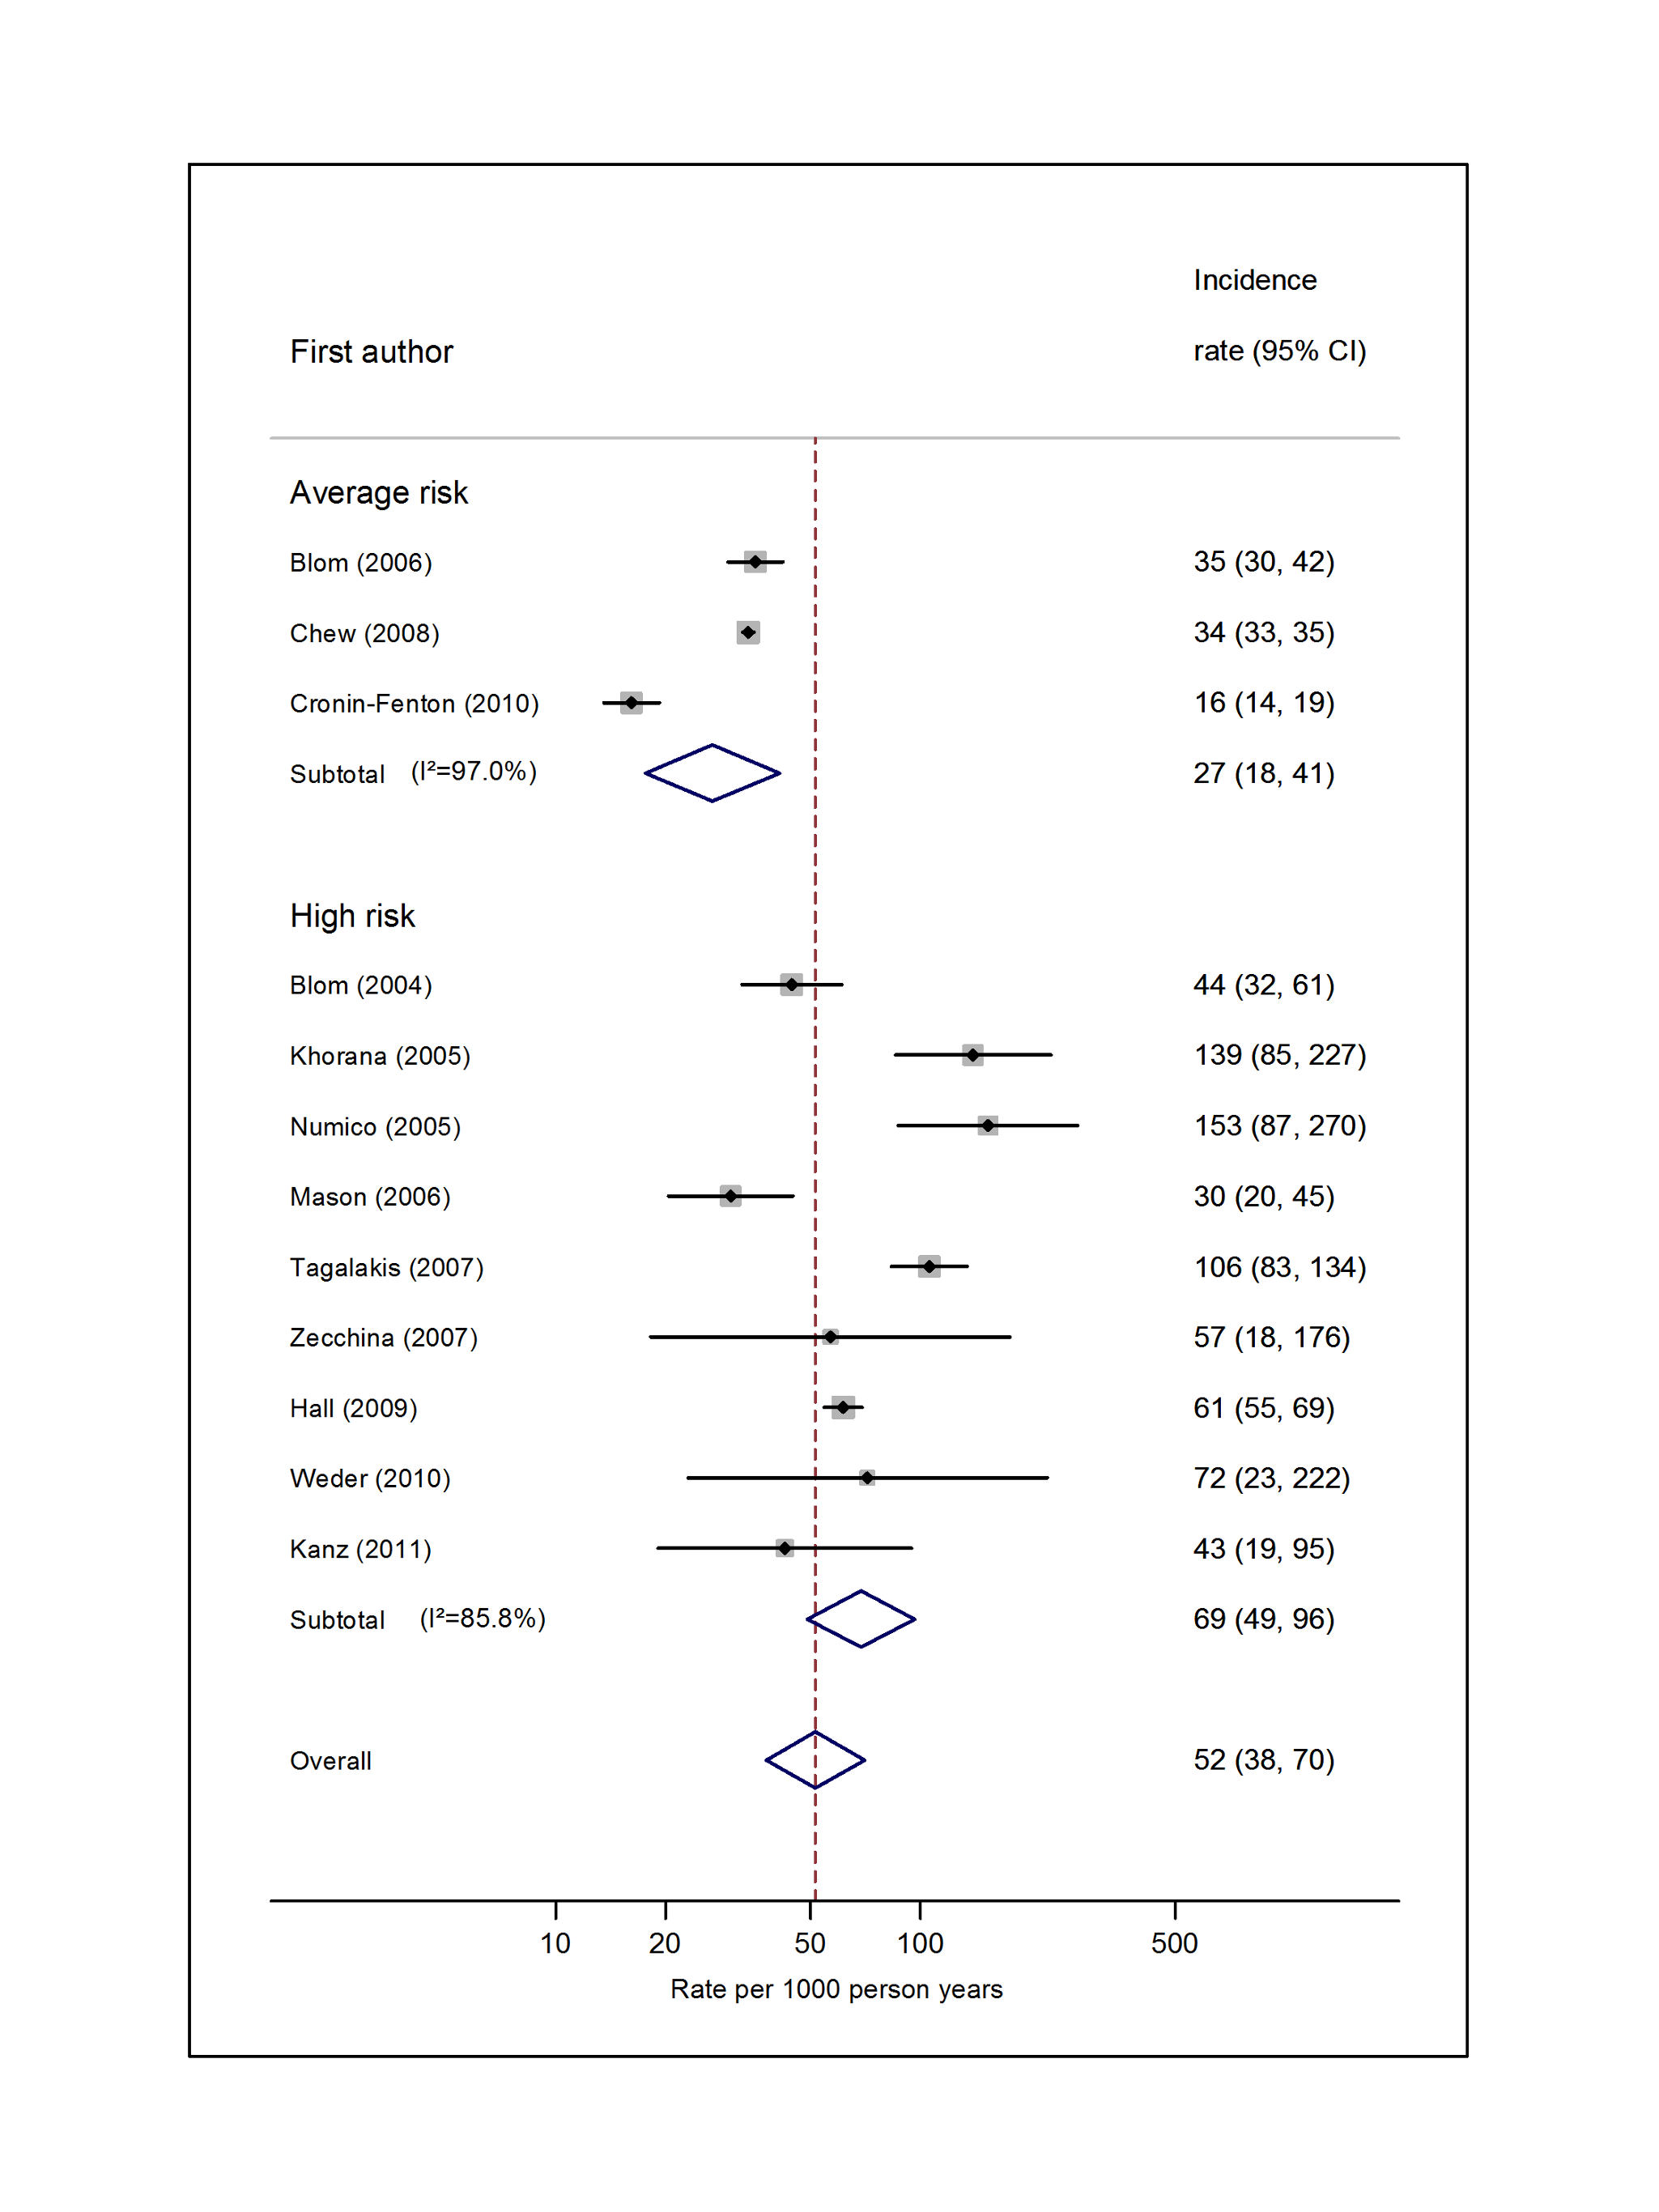 Pooled incidence of venous thromboembolism for lung cancer.